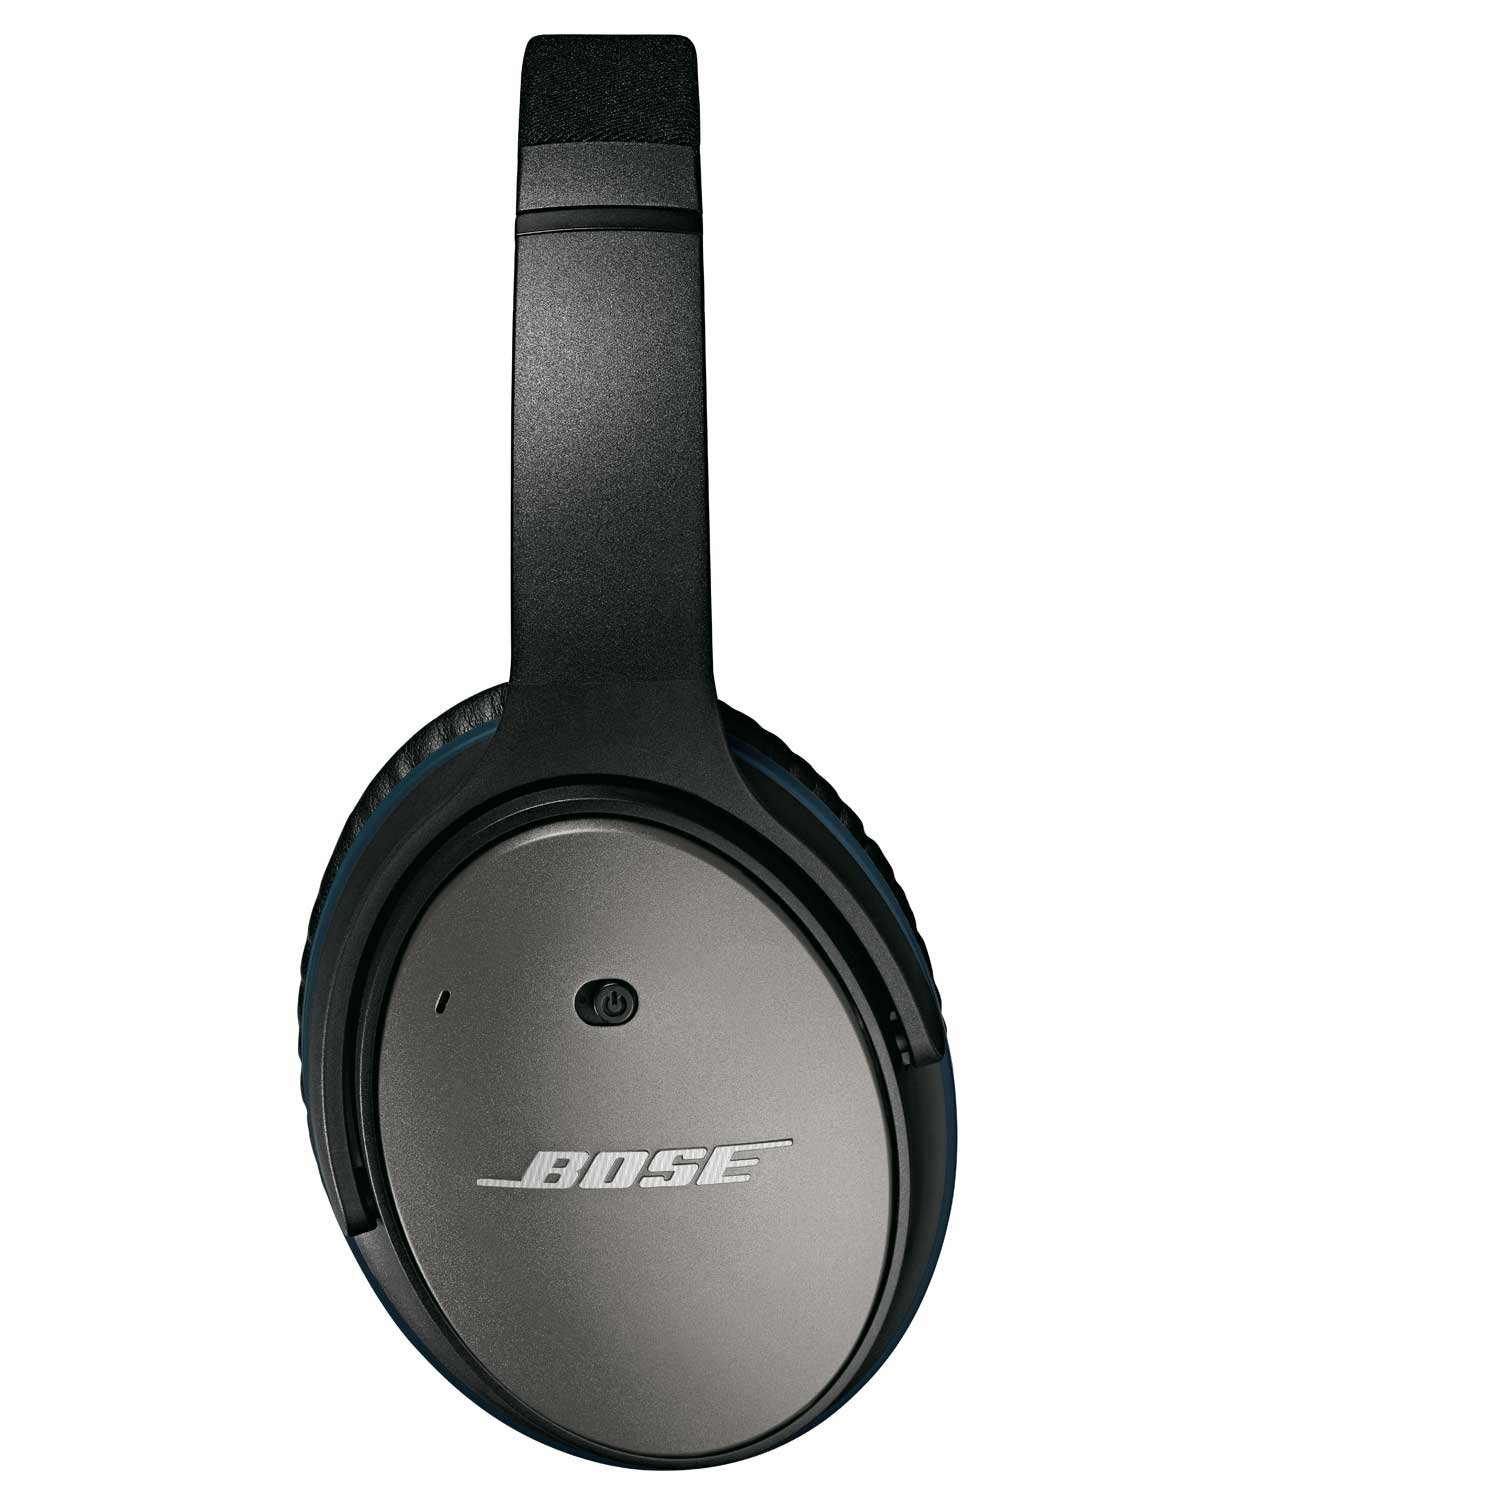 Bose QuietComfort 25 Acoustic Noise Cancelling Headphones for Apple devices - Black (wired, 3.5mm) by Bose (Image #4)